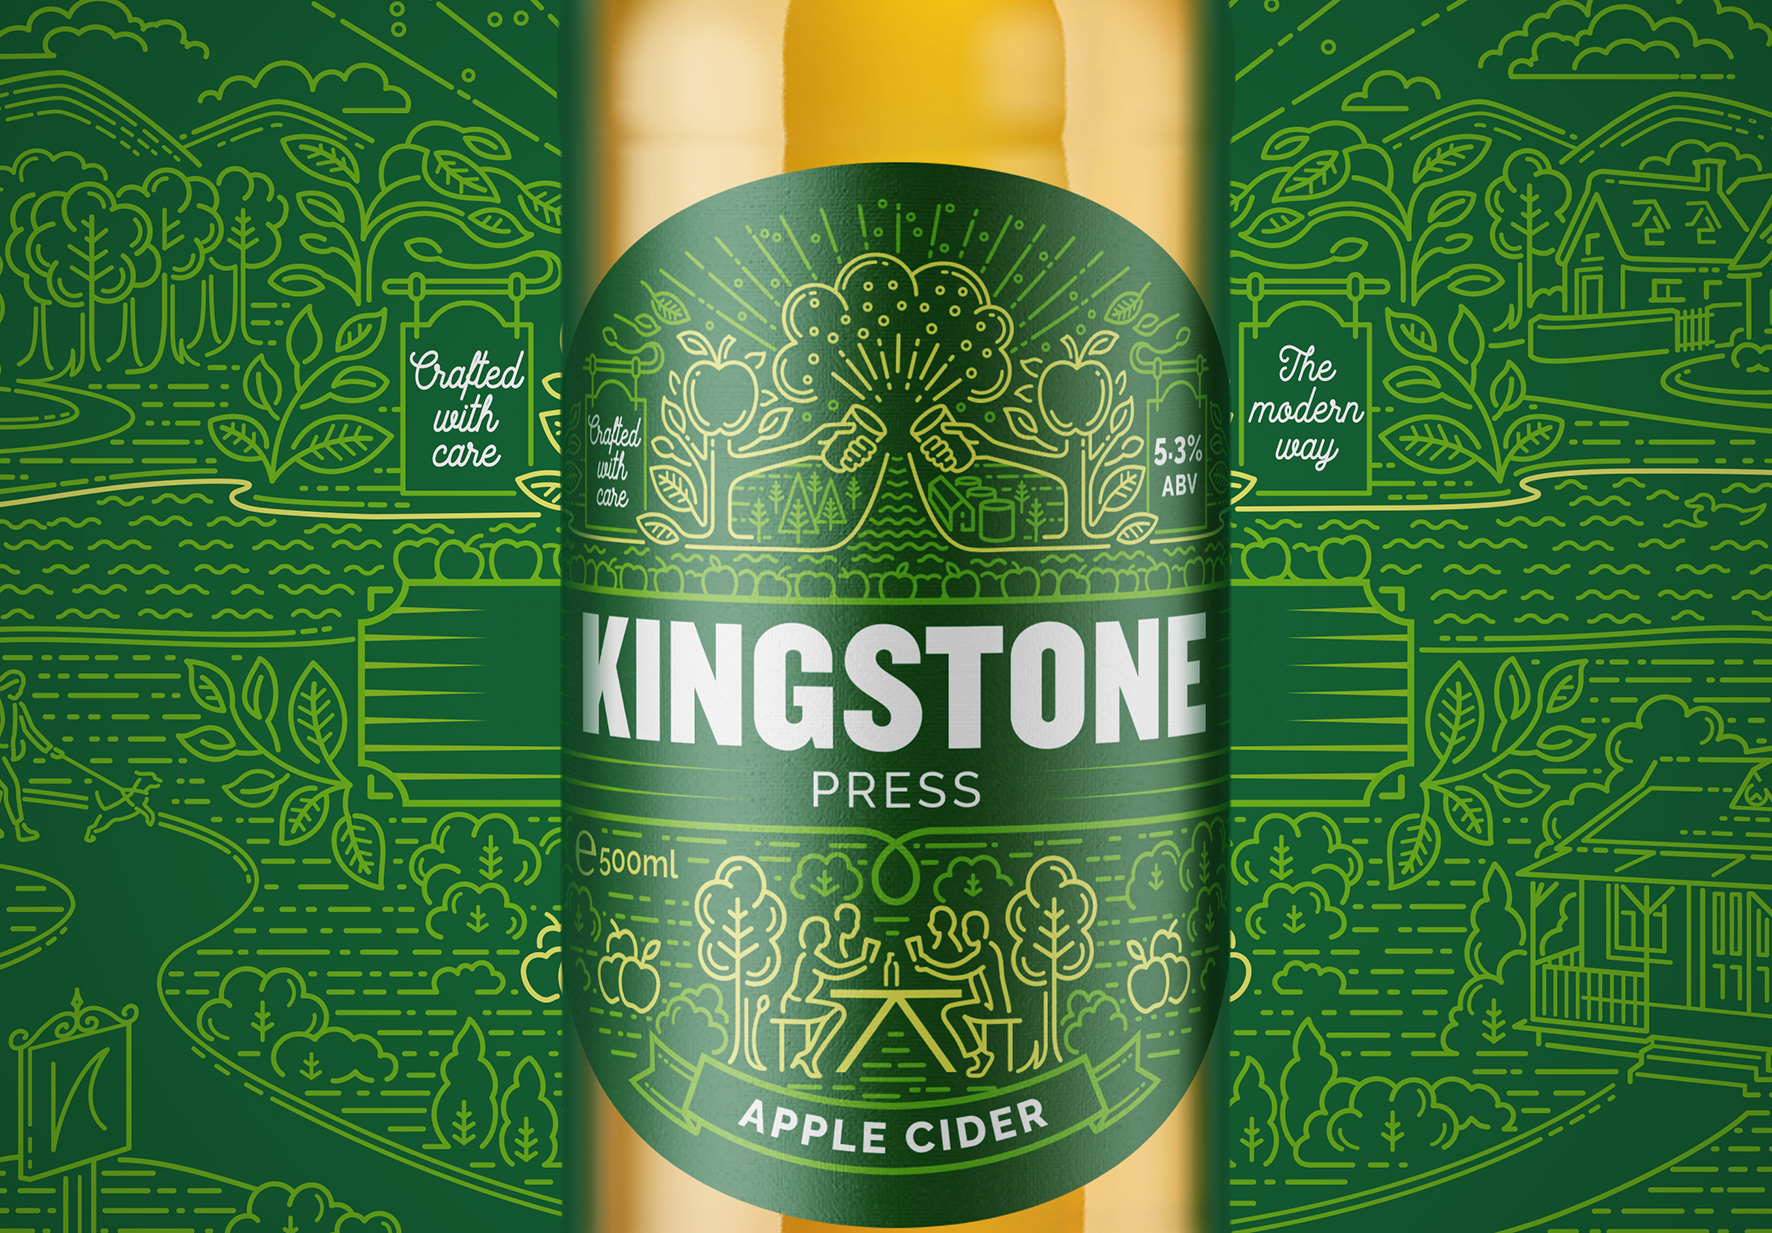 Kingstone Press Cider Rebrand by Pencil Studio